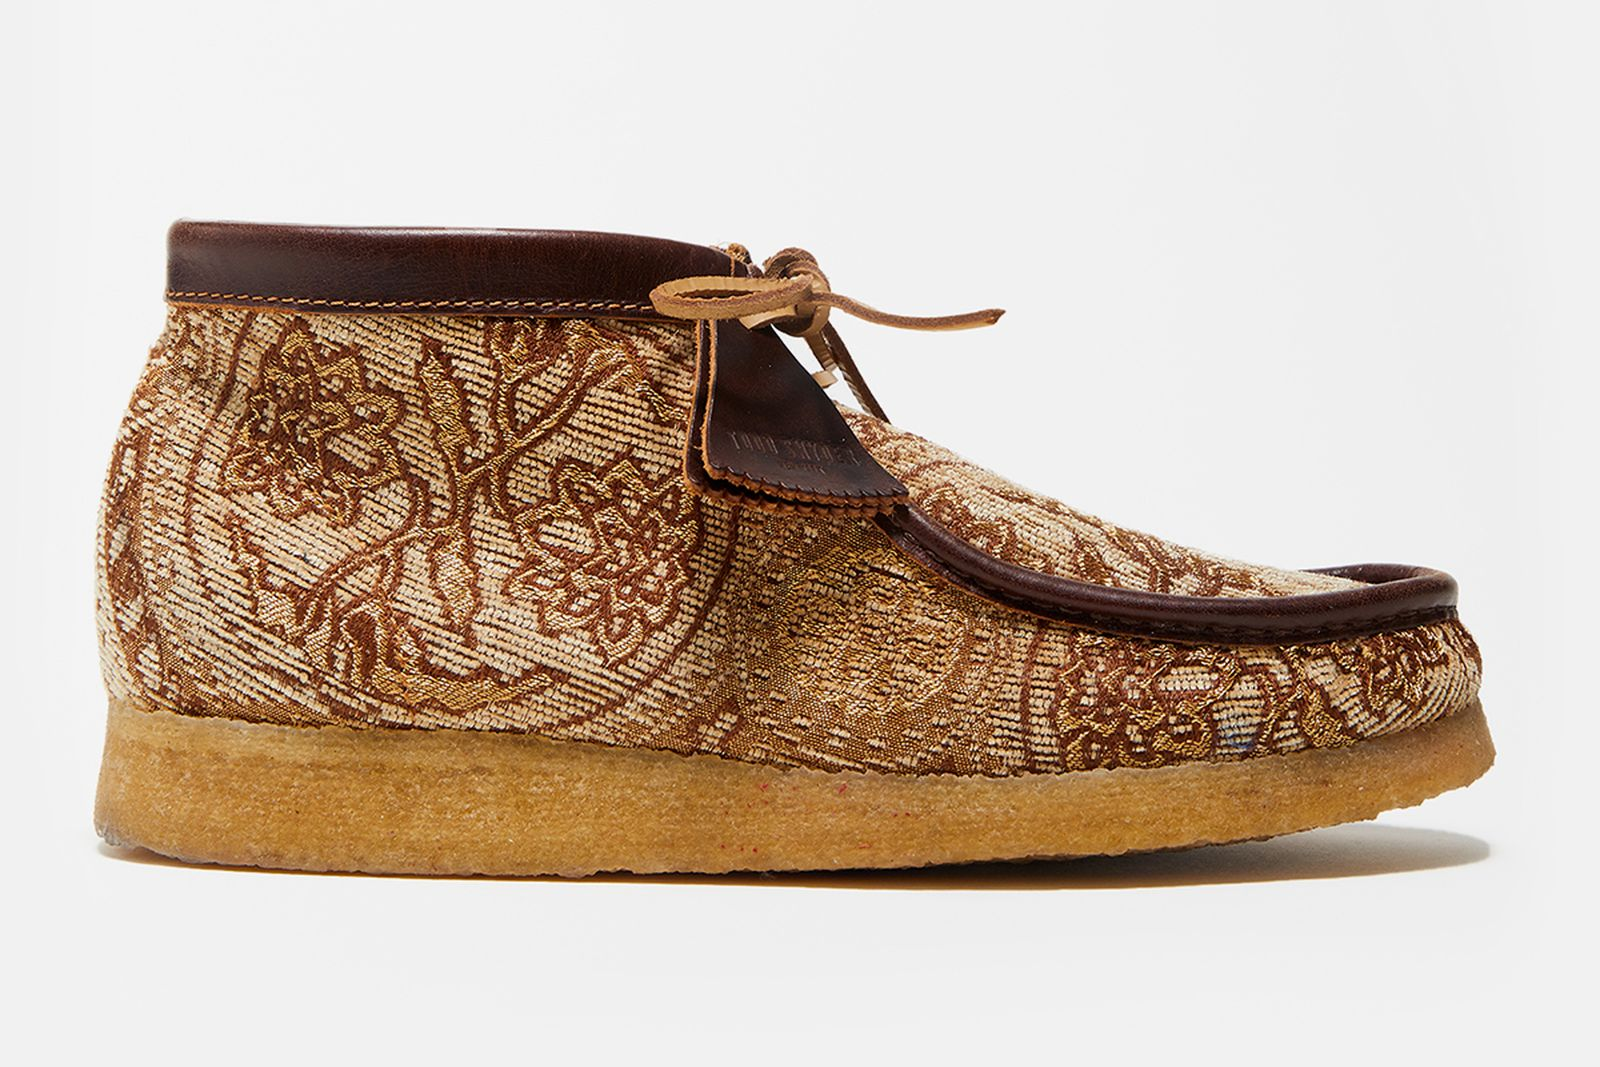 todd-snyder-clarks-wallabee-release-date-price-07